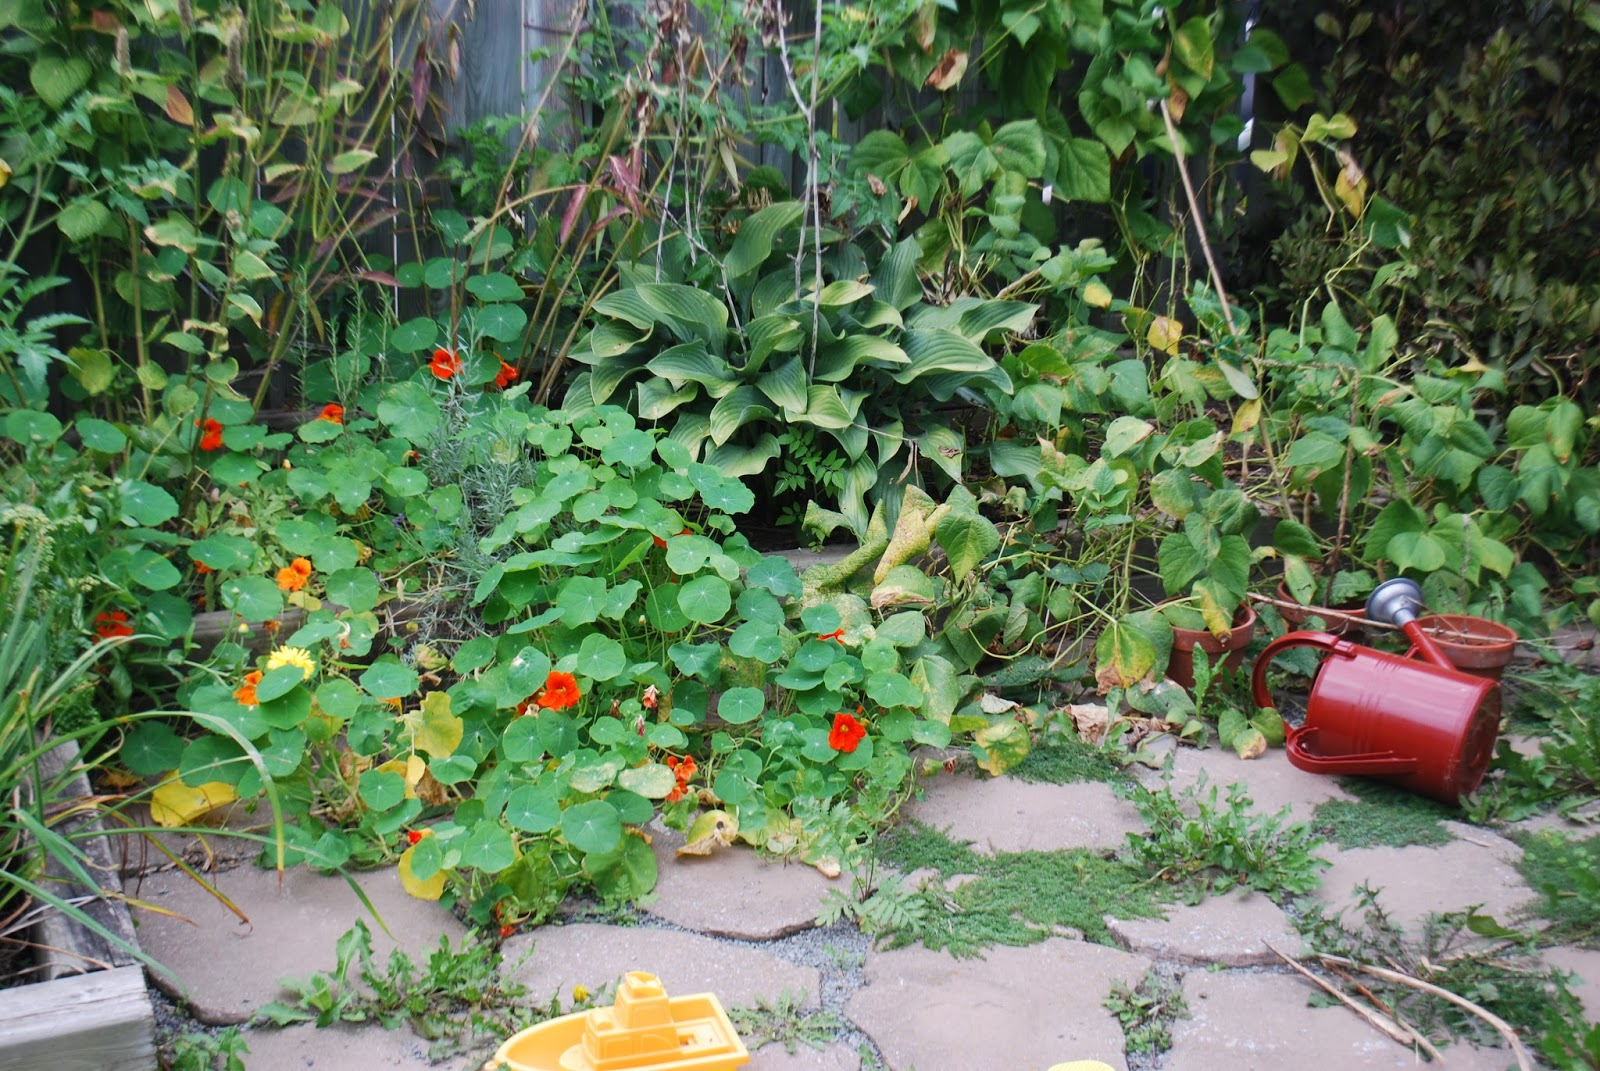 3 Gardens In Quebec The cheerfulness and bounce of nasturtium